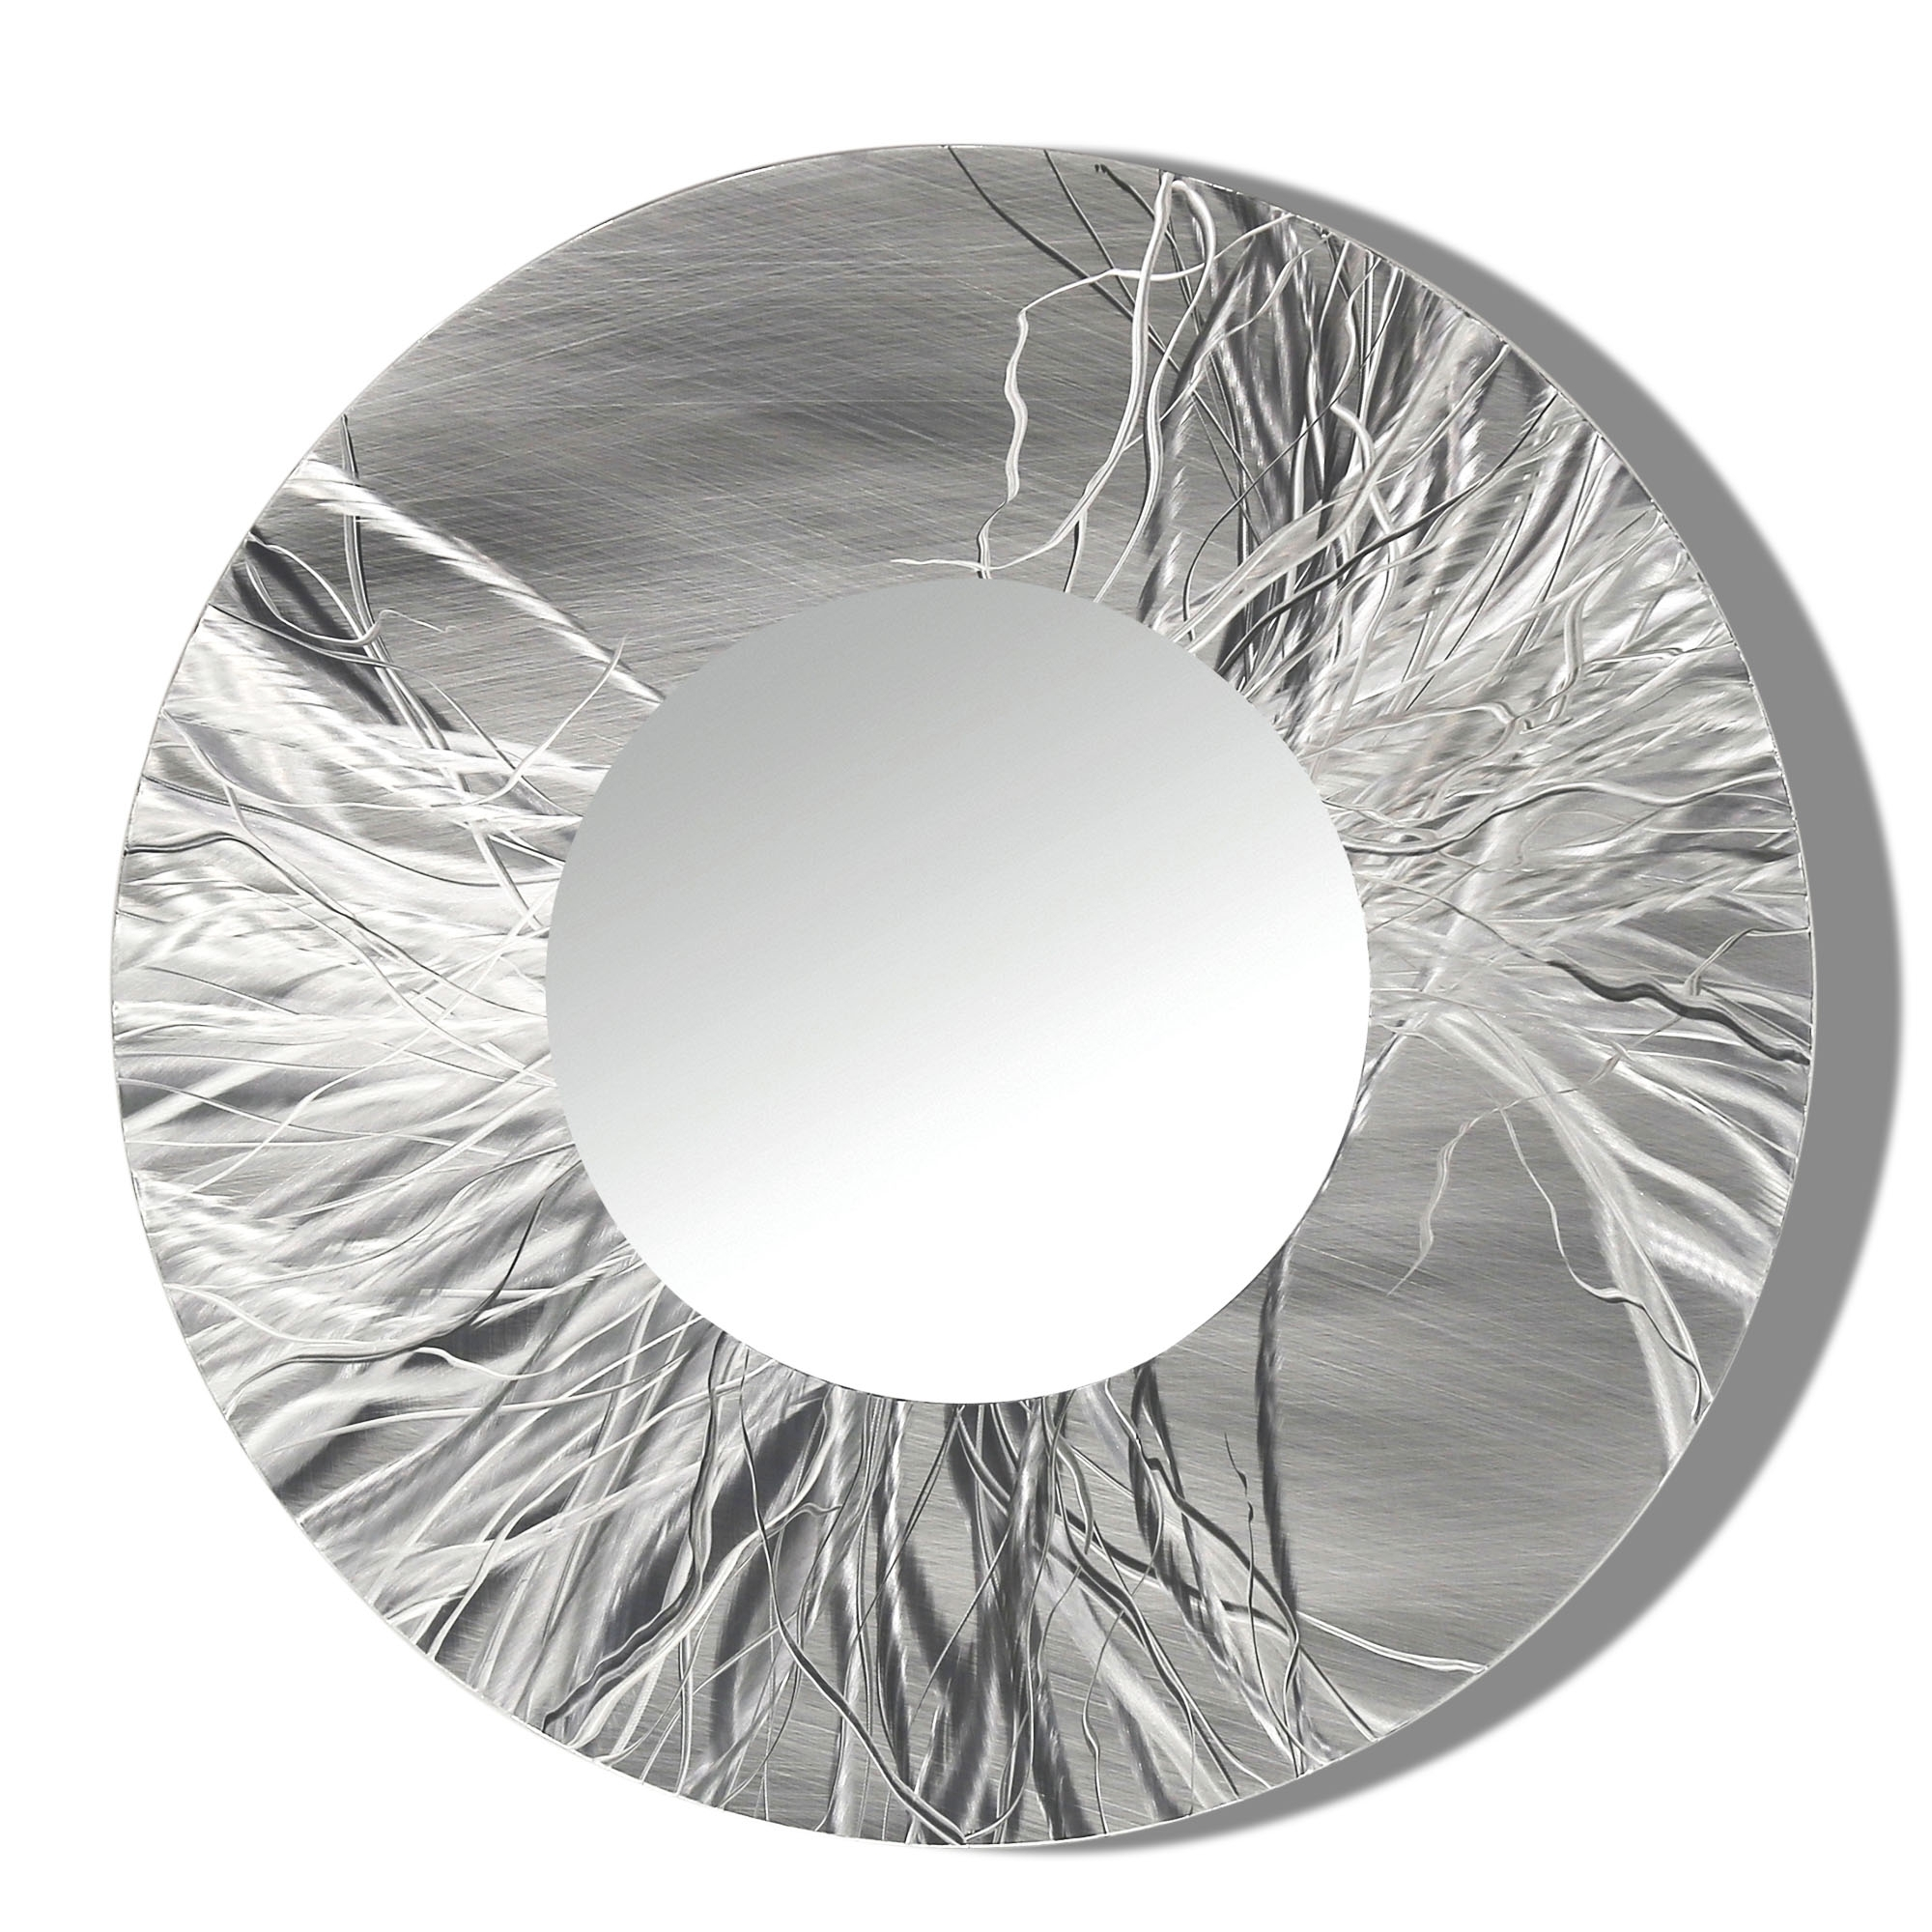 Well Liked Large Round Metal Wall Art With Regard To Mirror 104 – Round Silver Contemporary Metal Wall Art Round Mirror (View 15 of 15)